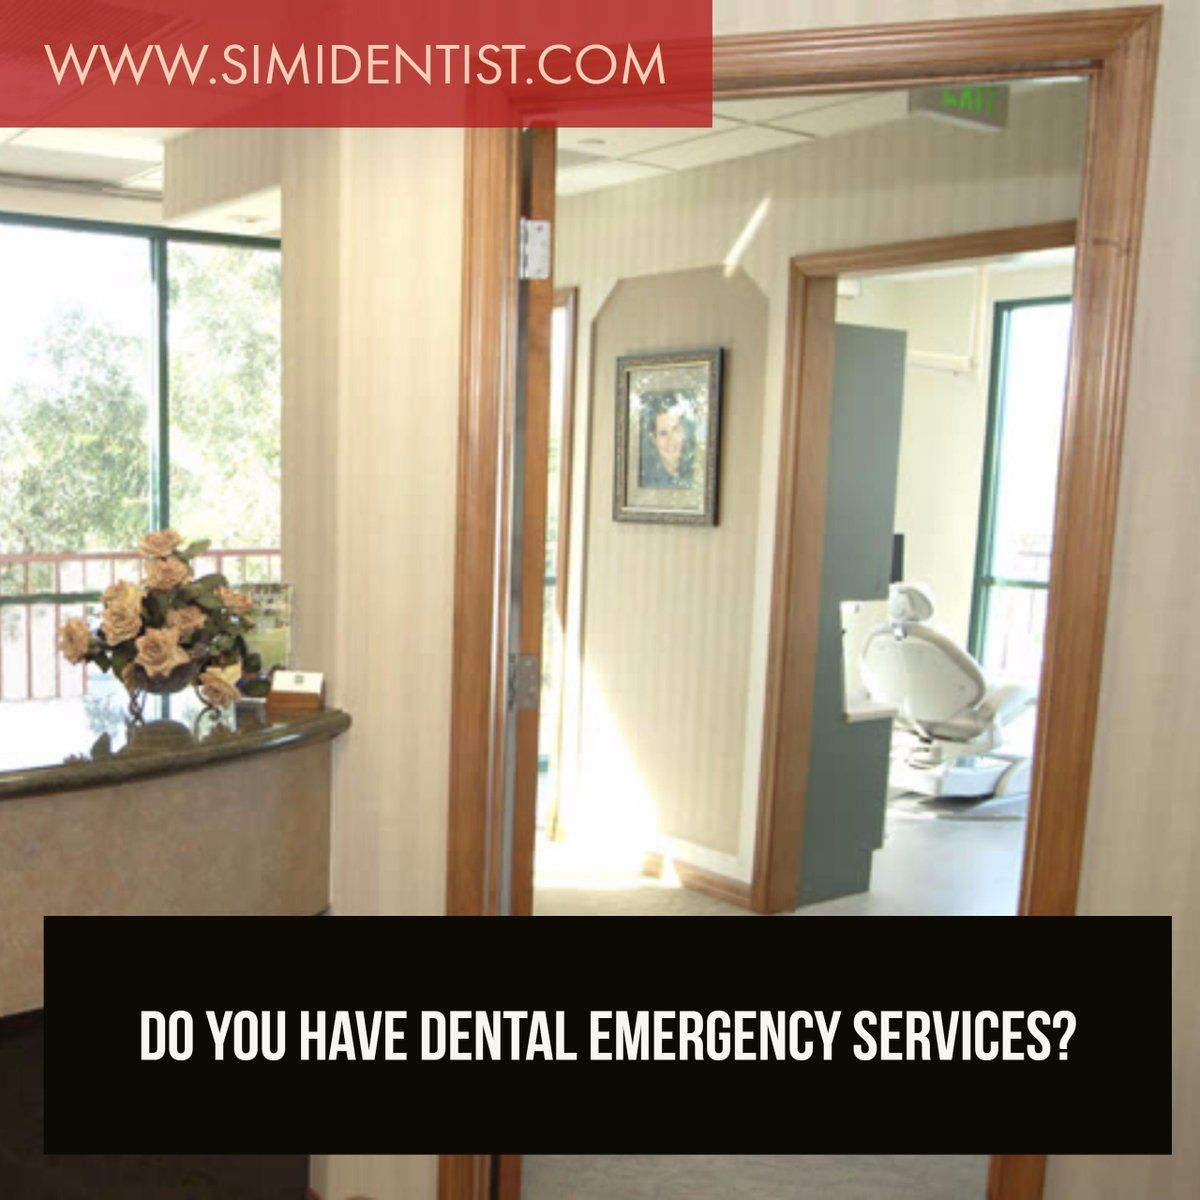 Yes, we have dental emergency services. Contact our Simi